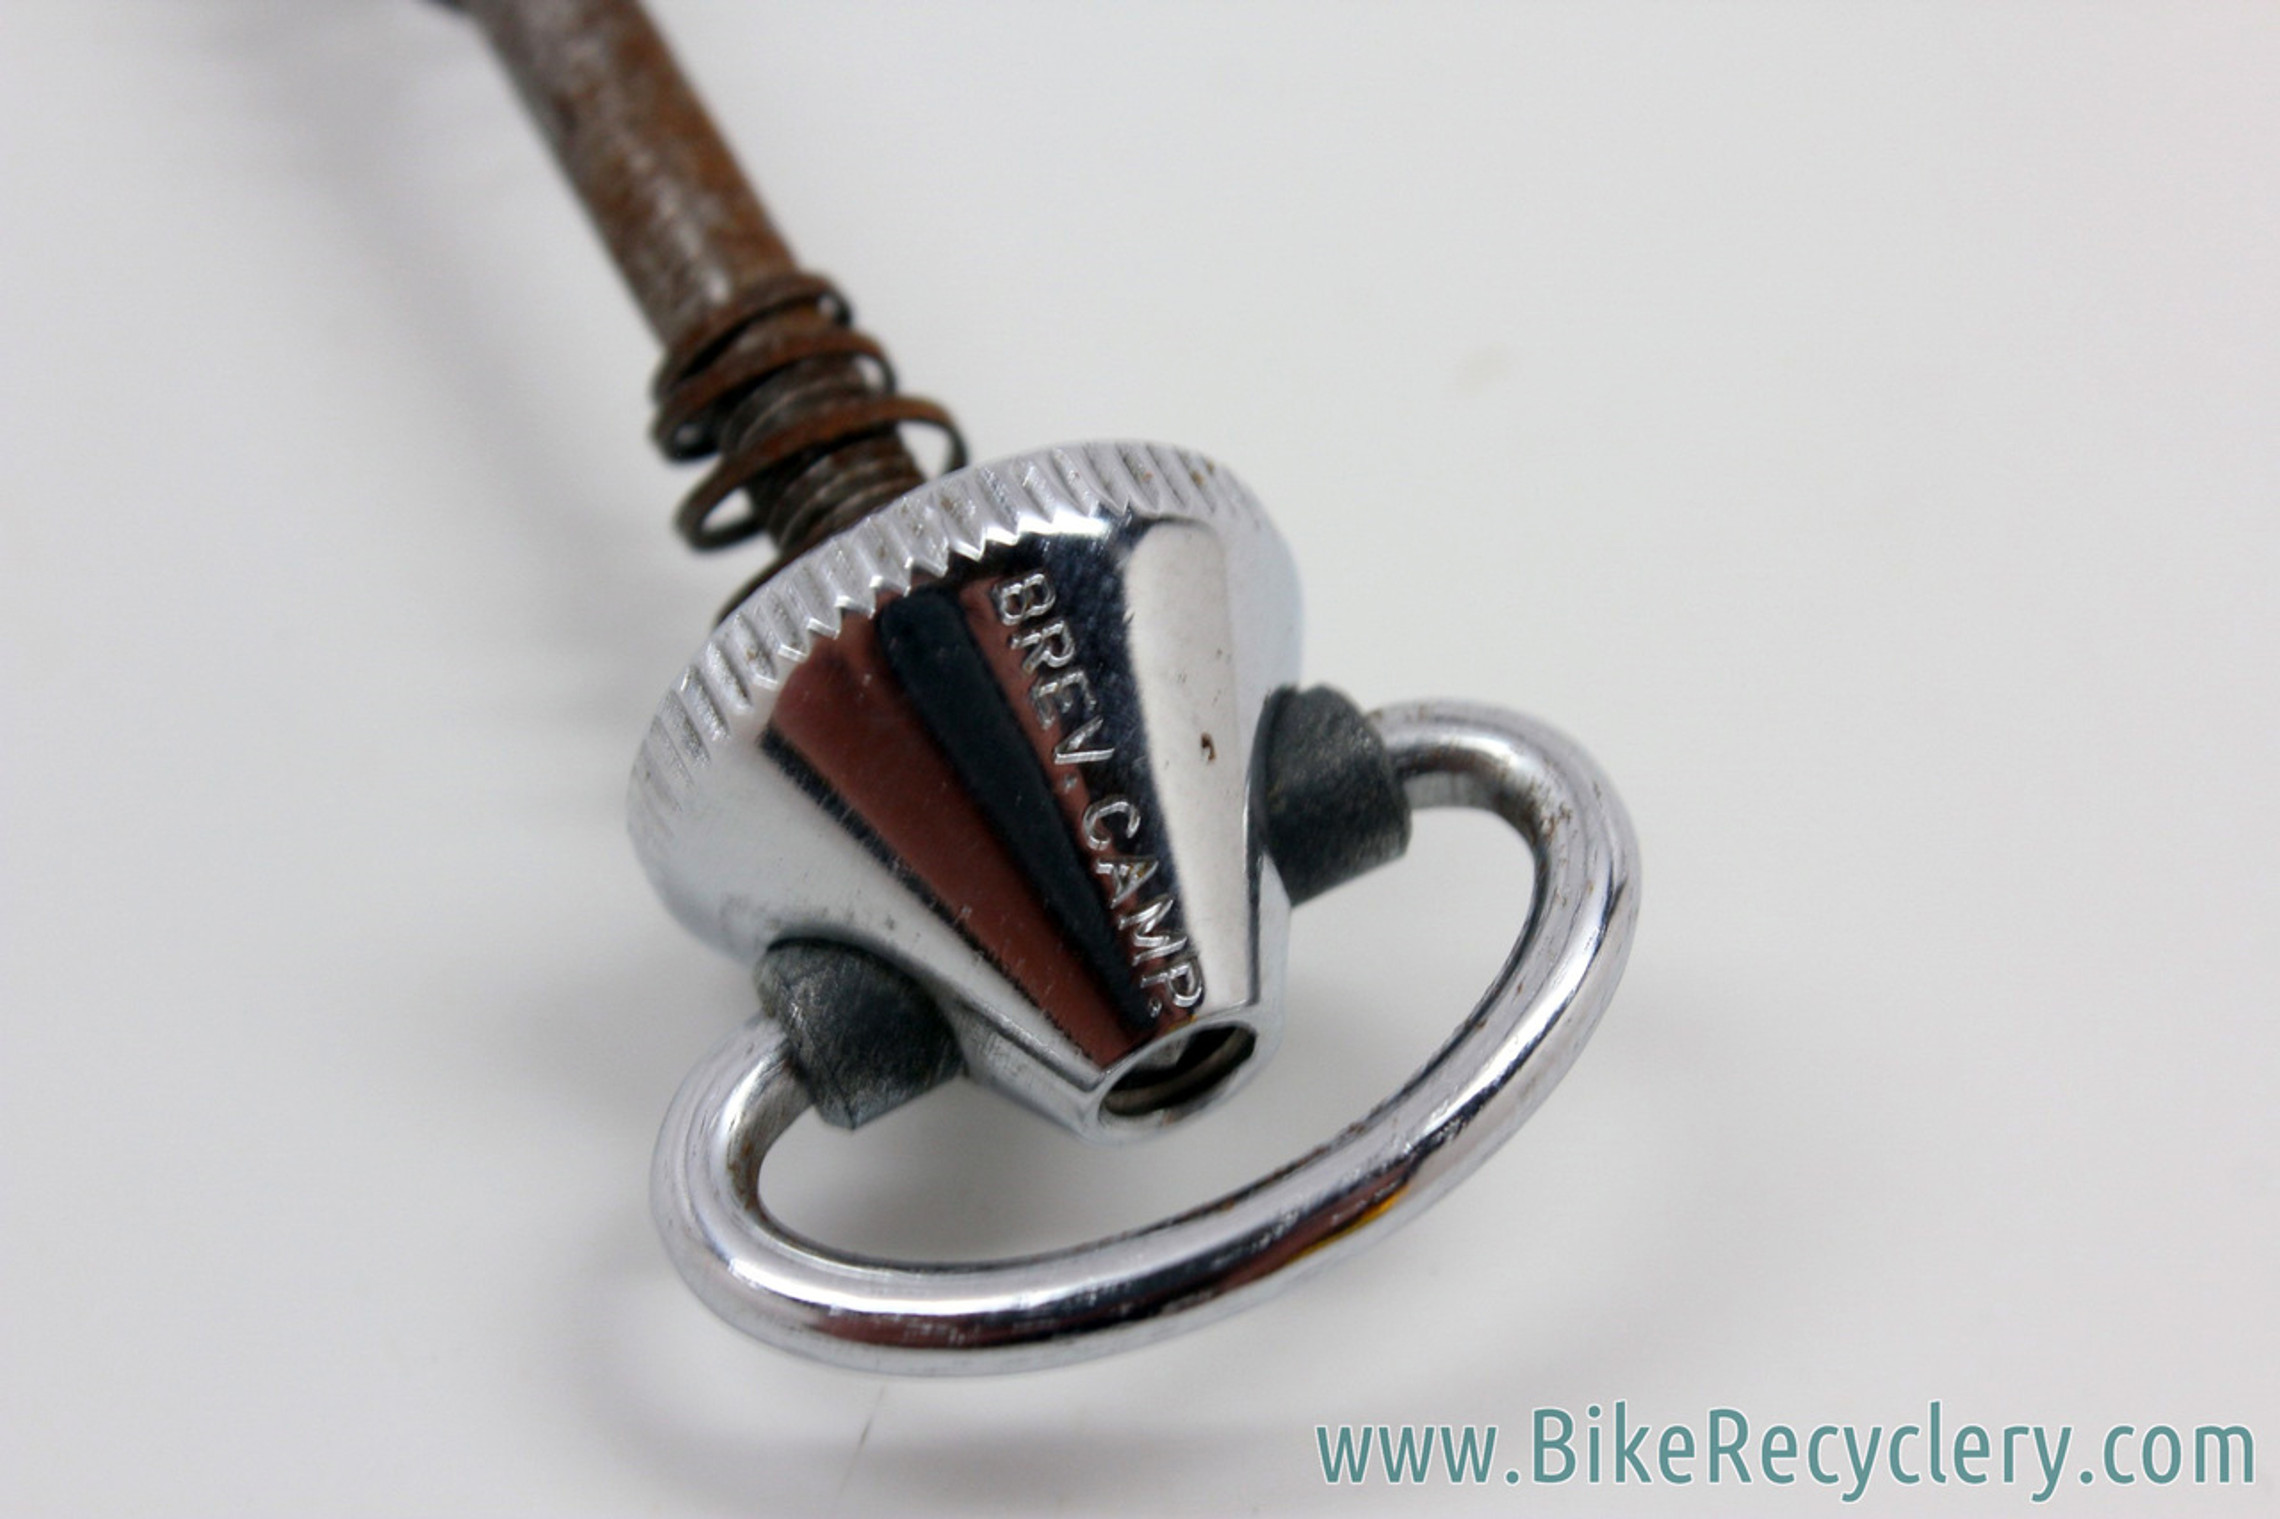 NOS Campagnolo Nuovo Record FRONT QR Skewer: Factory Bent(?) - Pre CPSC